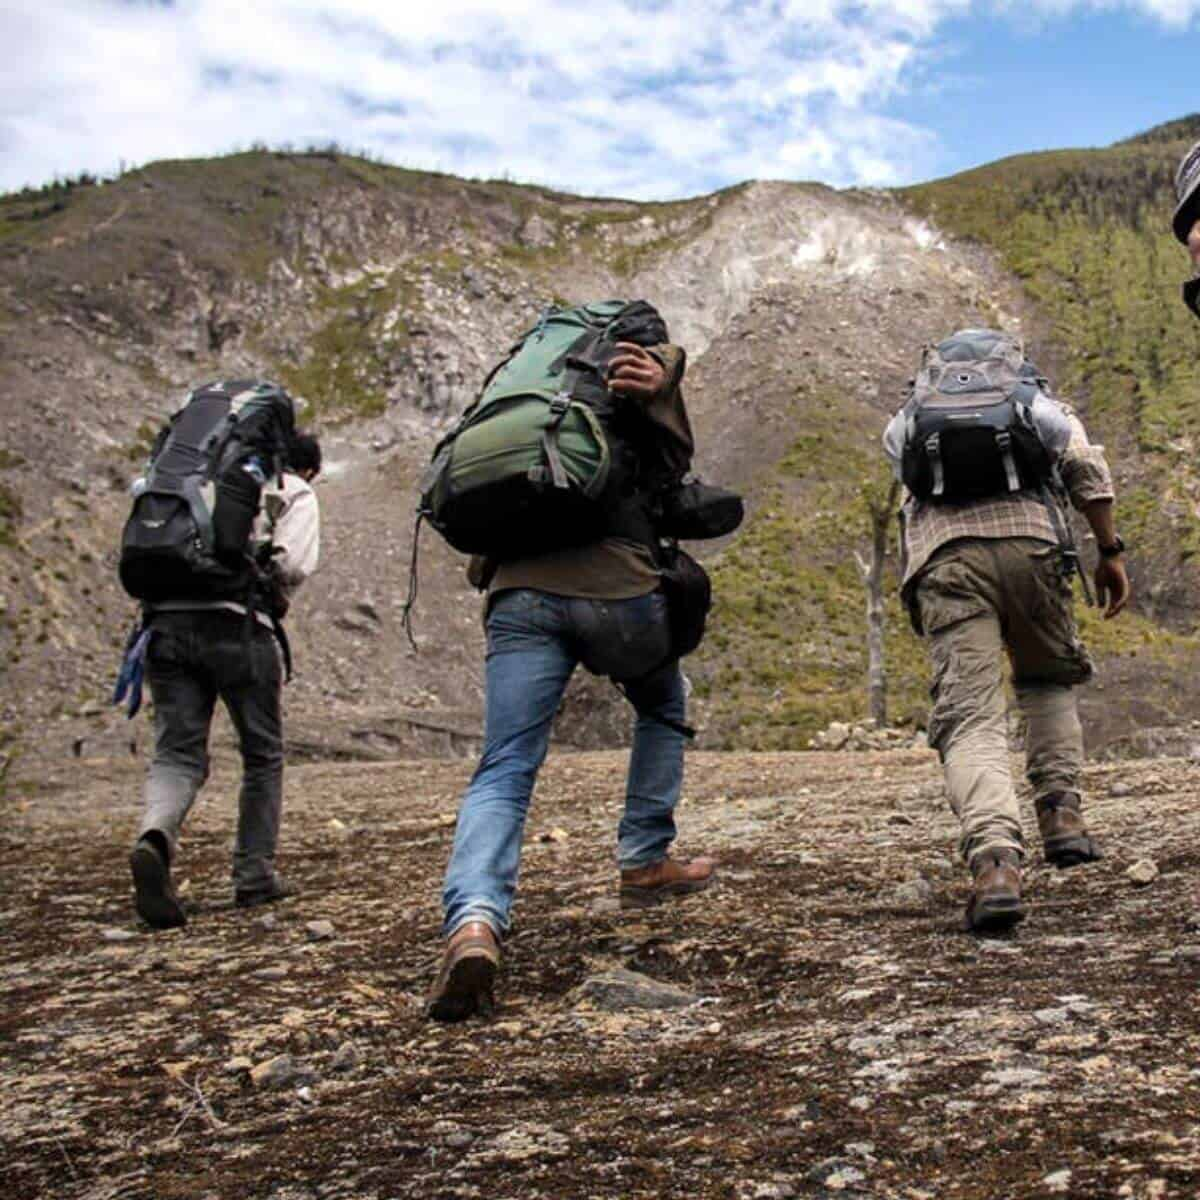 Three people rucking.